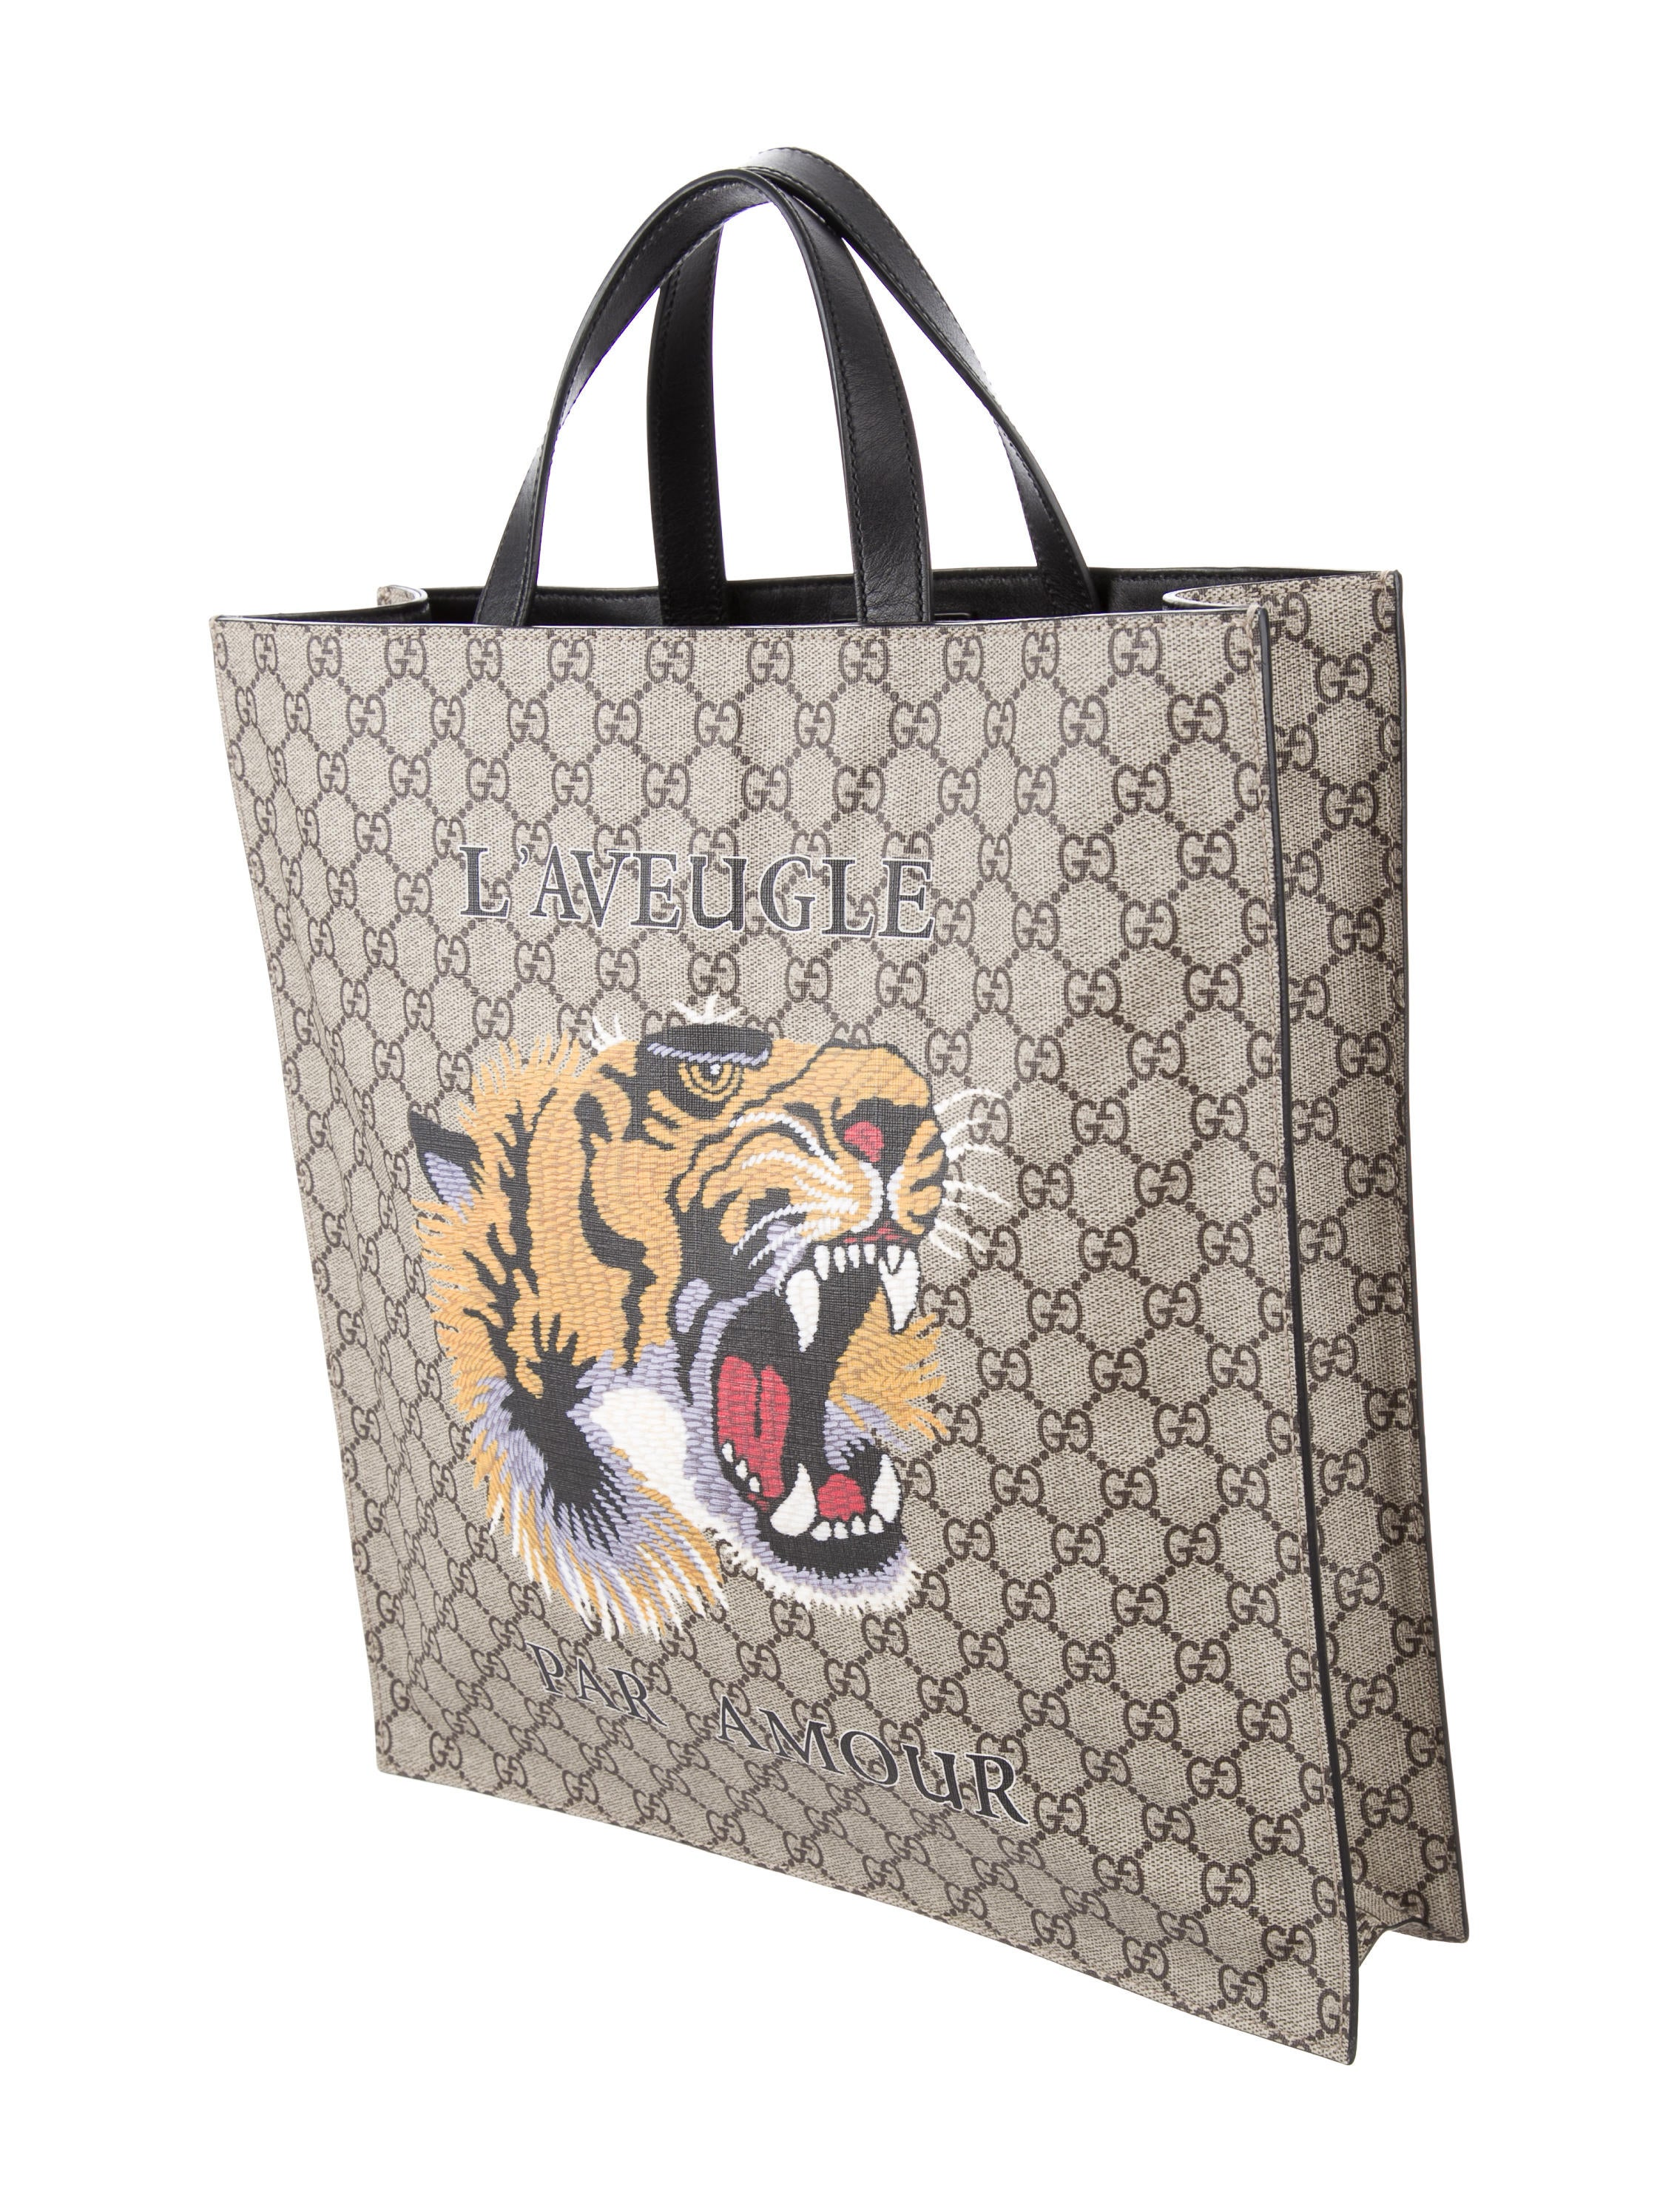 3a43c53b820d1f Gucci Tote With Tiger   Stanford Center for Opportunity Policy in ...